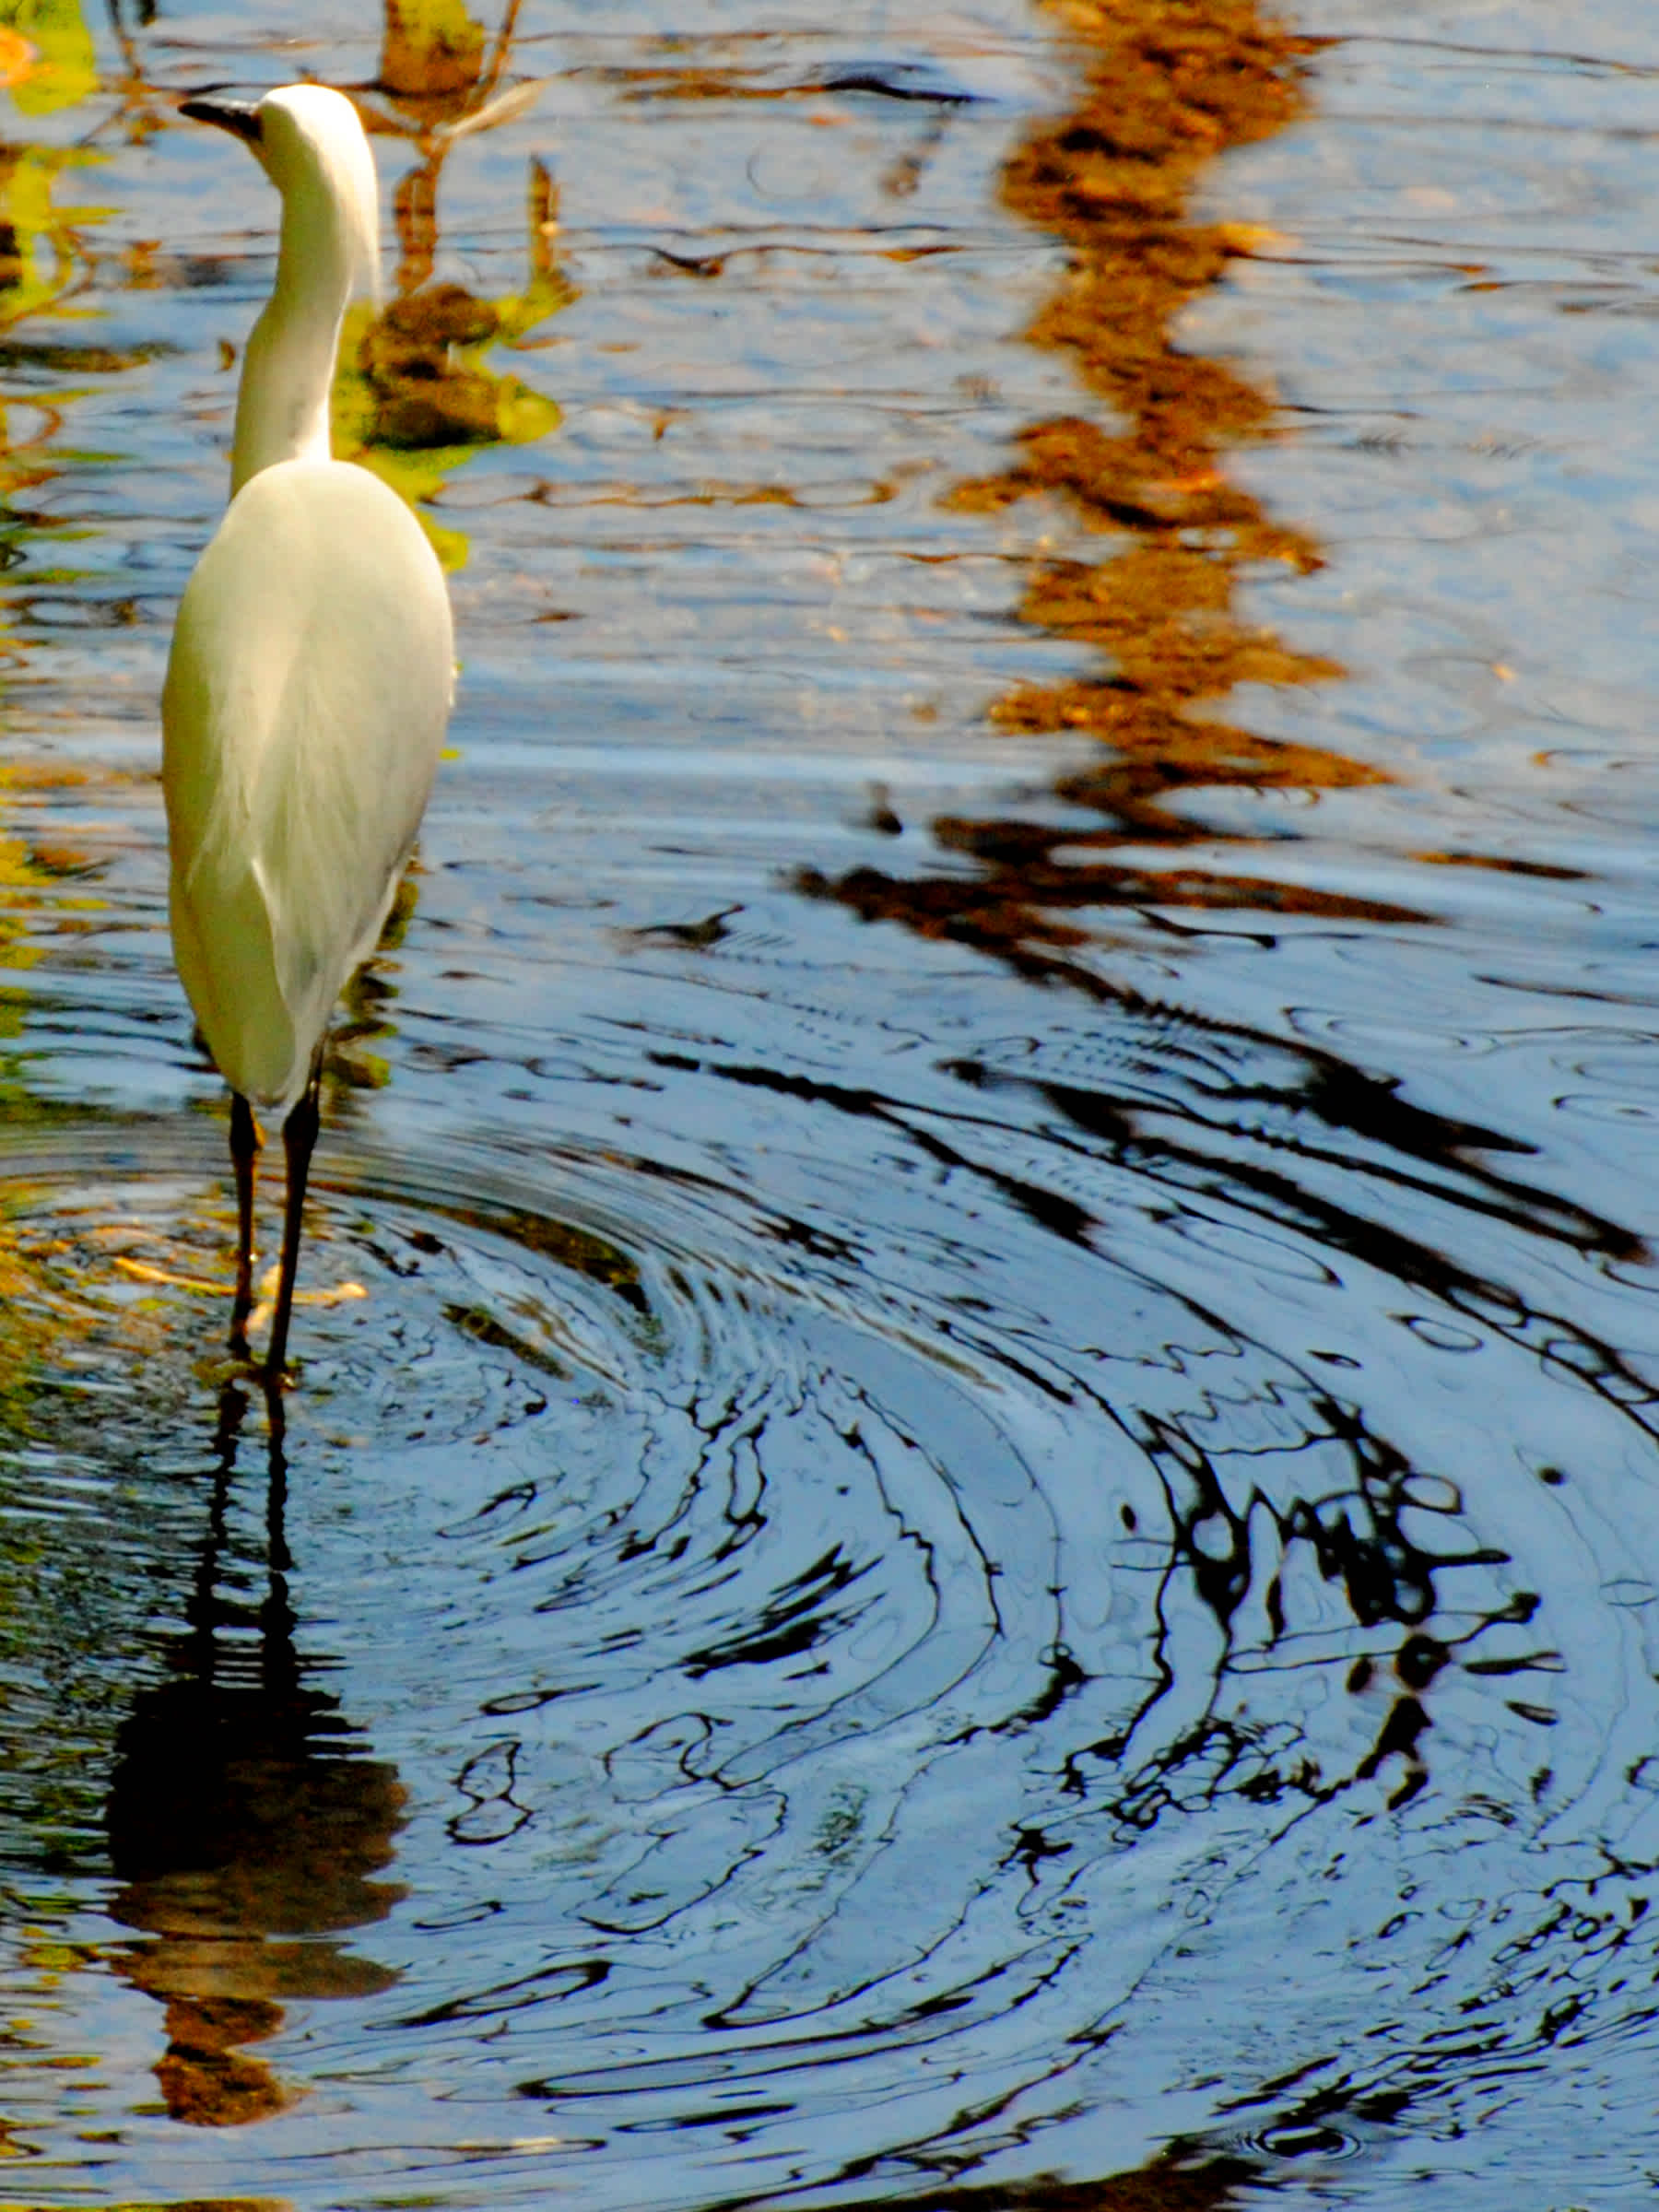 White bird with long legs standing in the water.